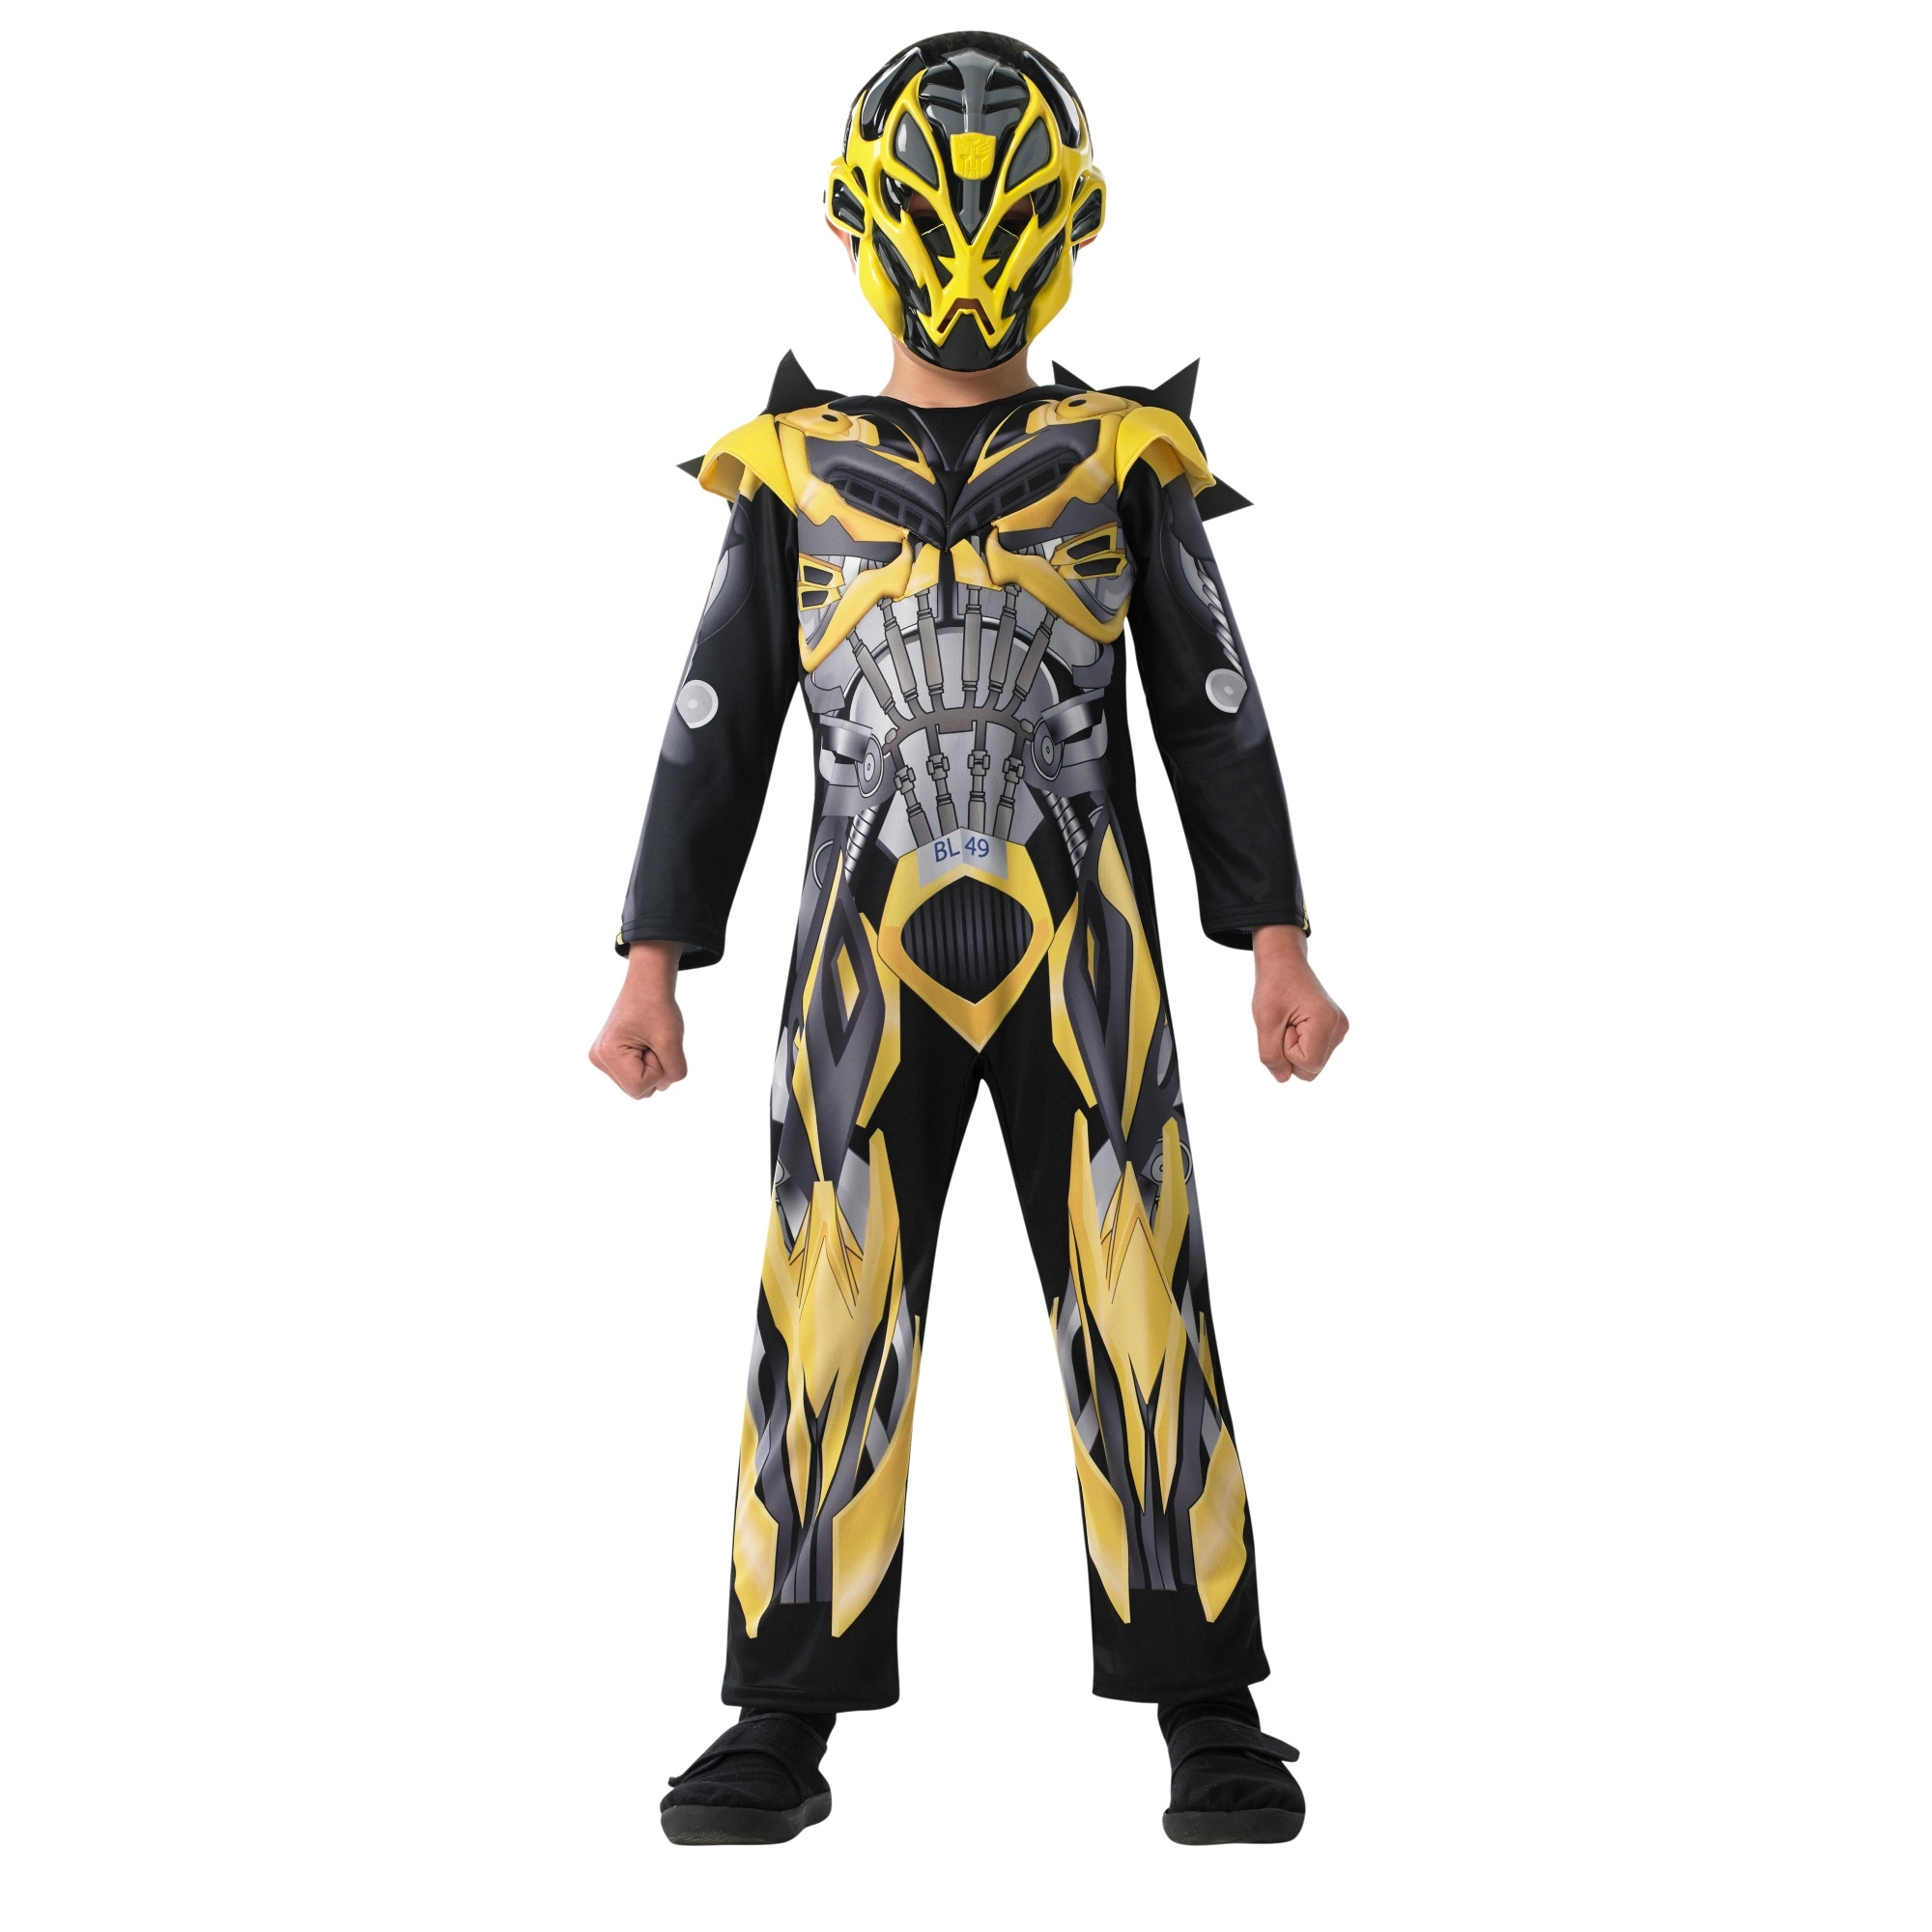 Transformers Bumble Bee Costume Medium